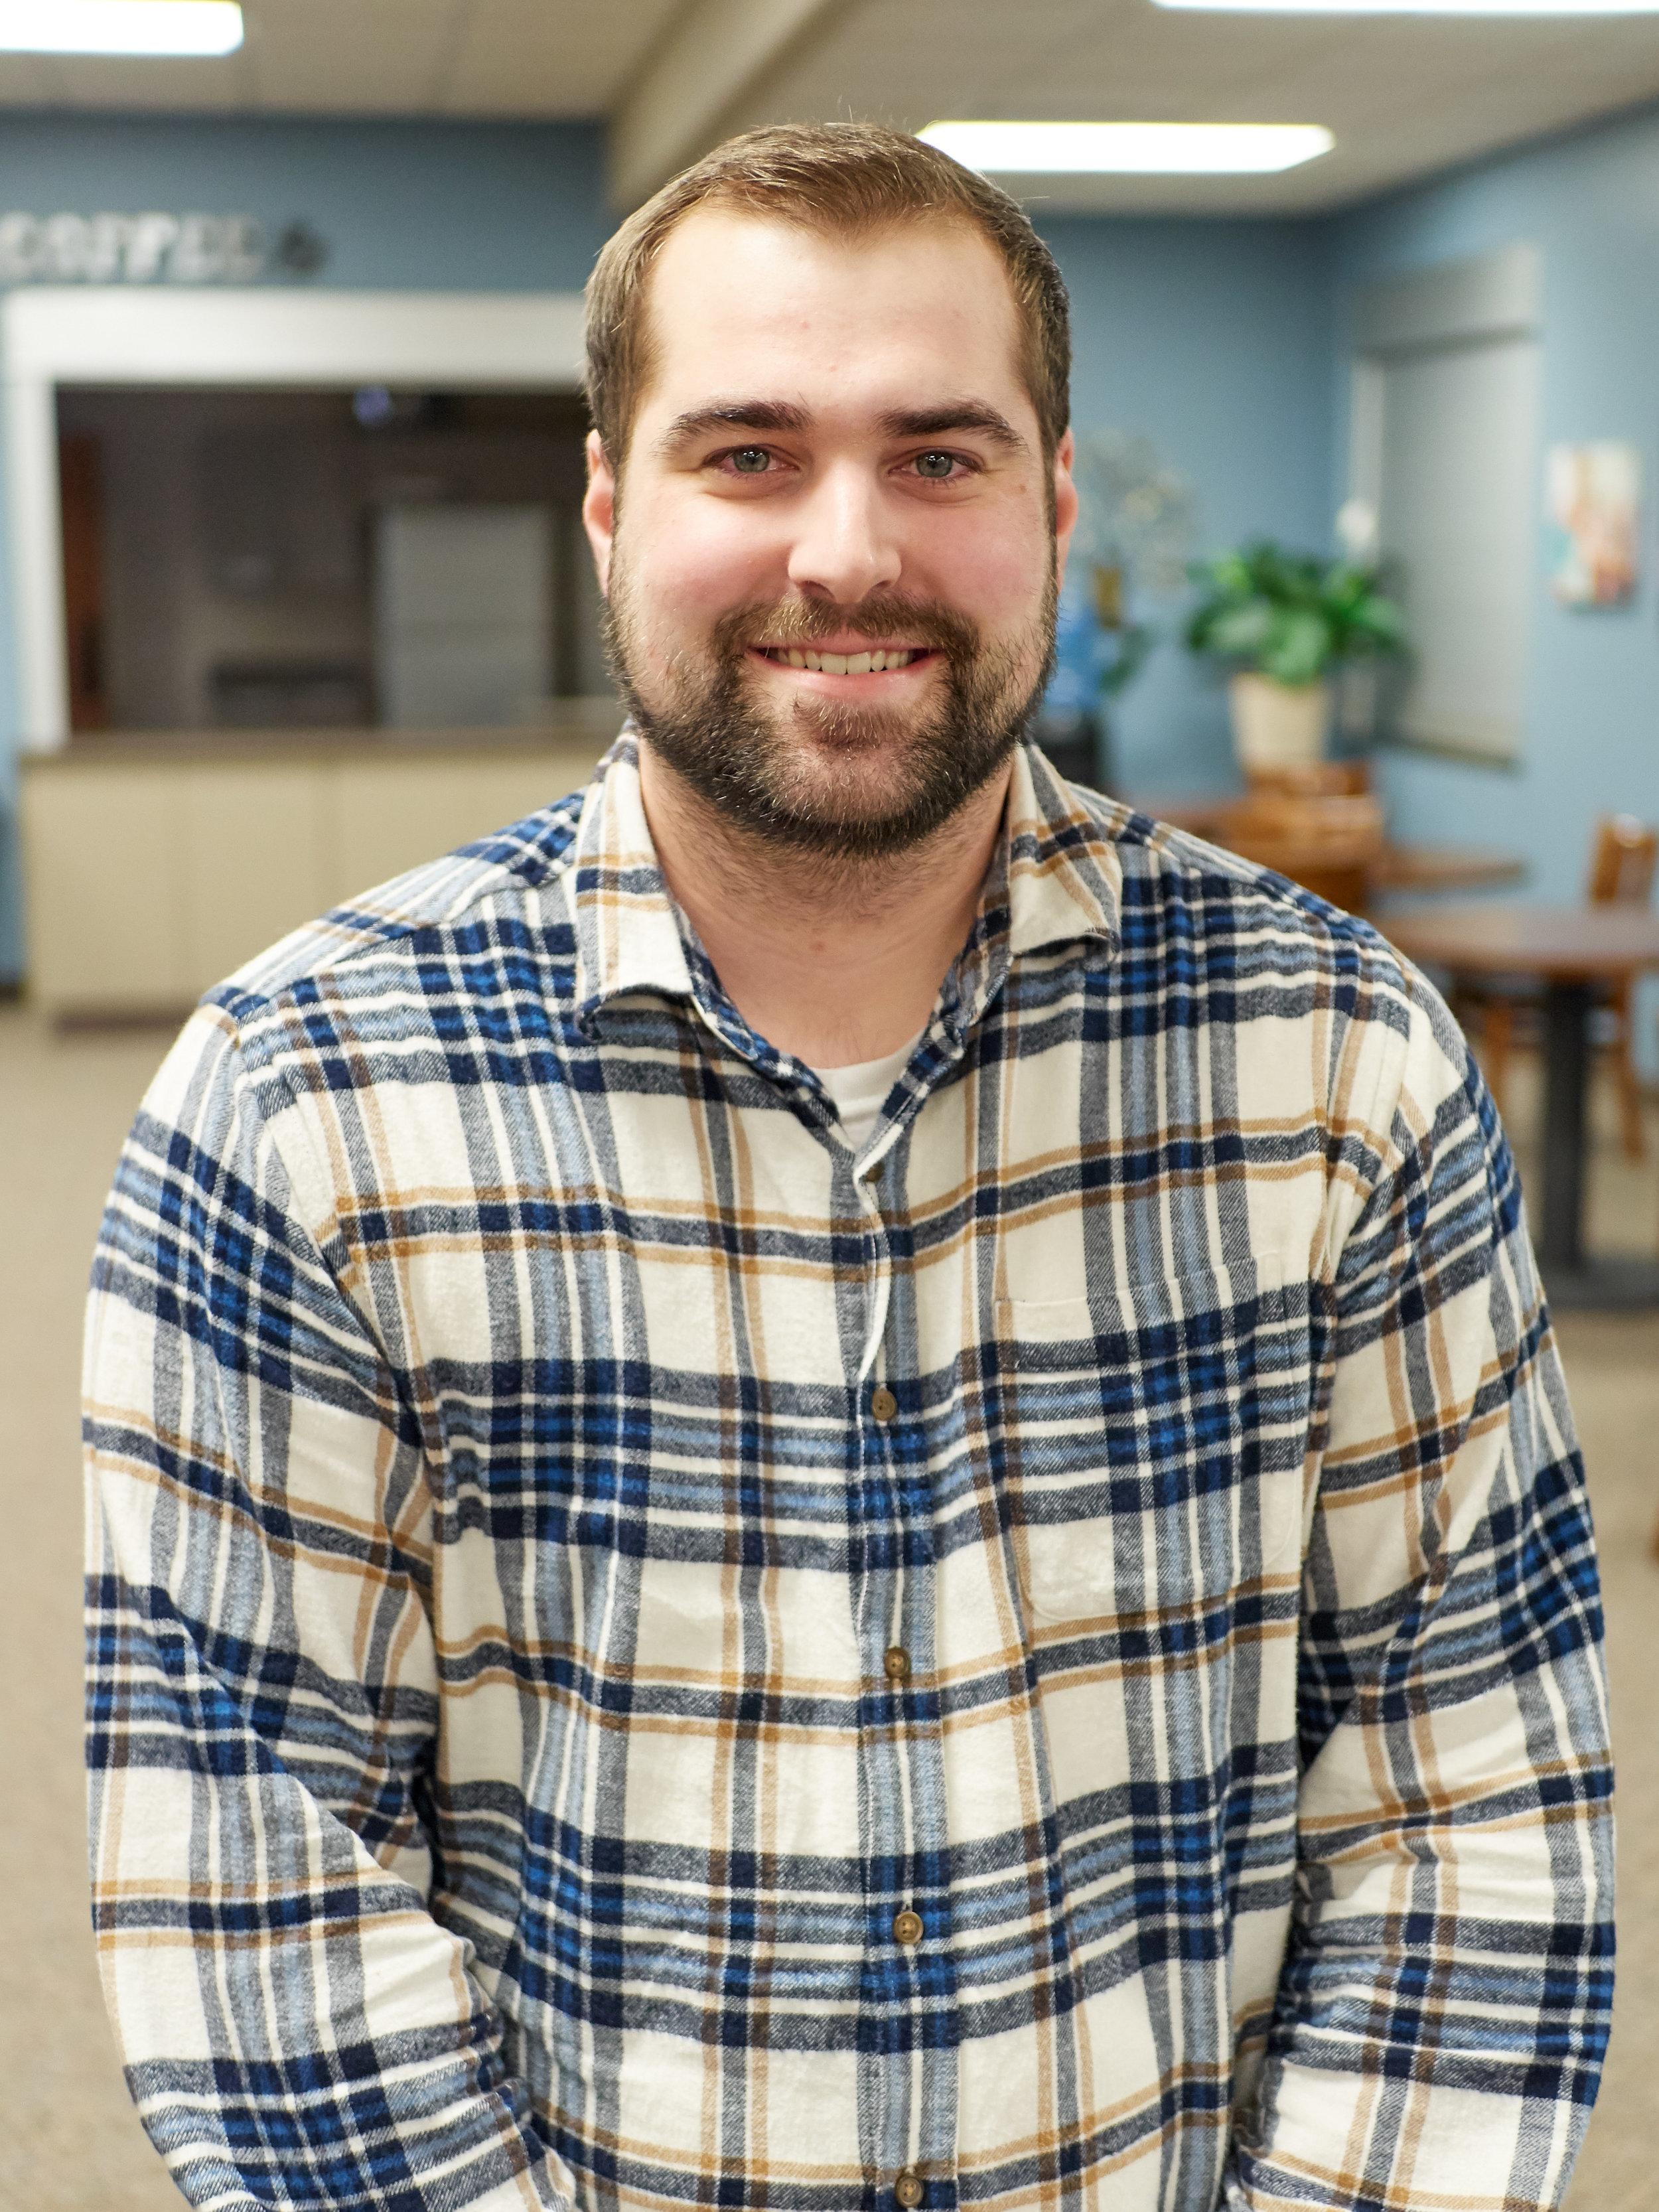 "WORSHIP PASTOR: Brennon Kok brennon@gncconline.com  Brennon serves as the Worship Pastor with Good News Community Church. He joined the Good News staff in April 2018. He is currently pursuing a Masters of Arts in Worship Degree at Northern Seminary. Brennon and his wife, Jordyn, are originally from Randolph, WI. They now reside in Milford with their two children Elijah and Elyse. You can find him enjoying carpentry, playing/writing music, getting tired out with a good pick-up game of basketball at the Okoboji YMCA or with Elijah, and spending time with Jordyn and the kids.  Worship isn't just singing songs and raising a hand…whether it's the ""carrying the tv"", ""my fish was this big"", ""here, hold my baby"", ""fixing the light bulb"", ""goal posts"", or more. Worship is declaring our dependence on God and submitting to His will."